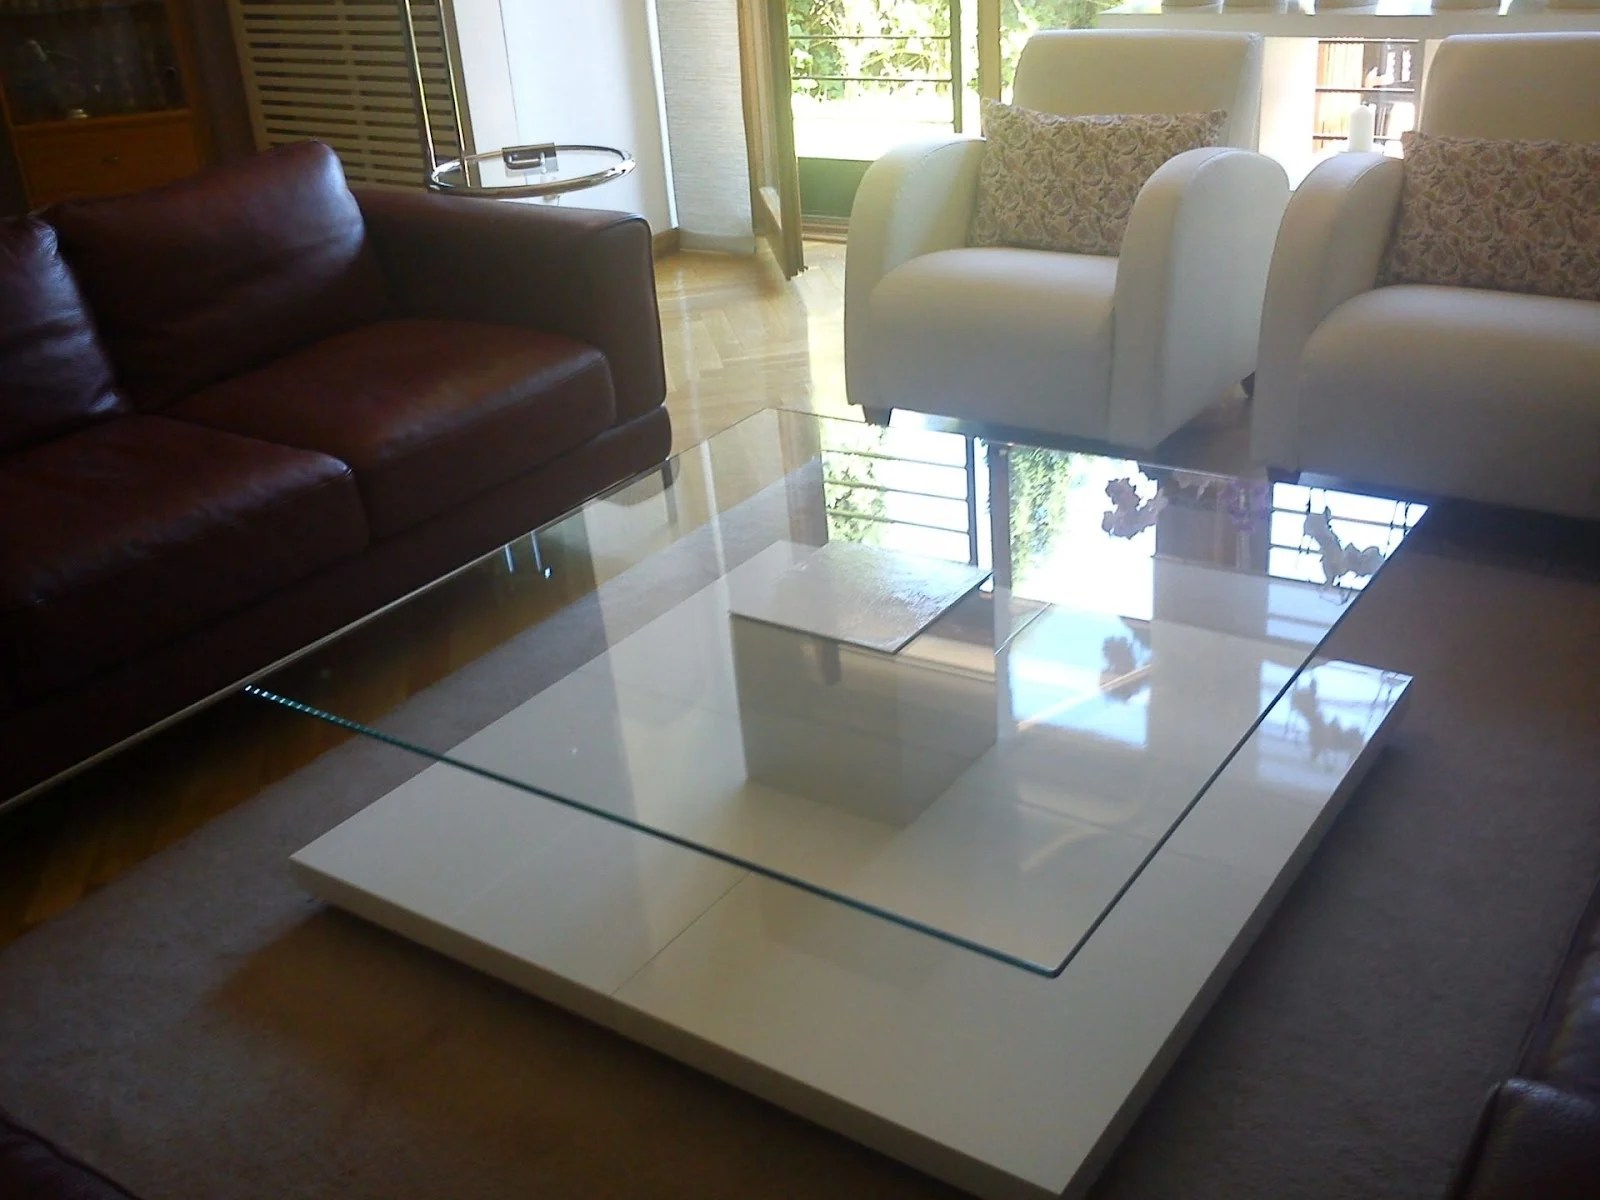 Four Lack table base coffee table - IKEA Hackers